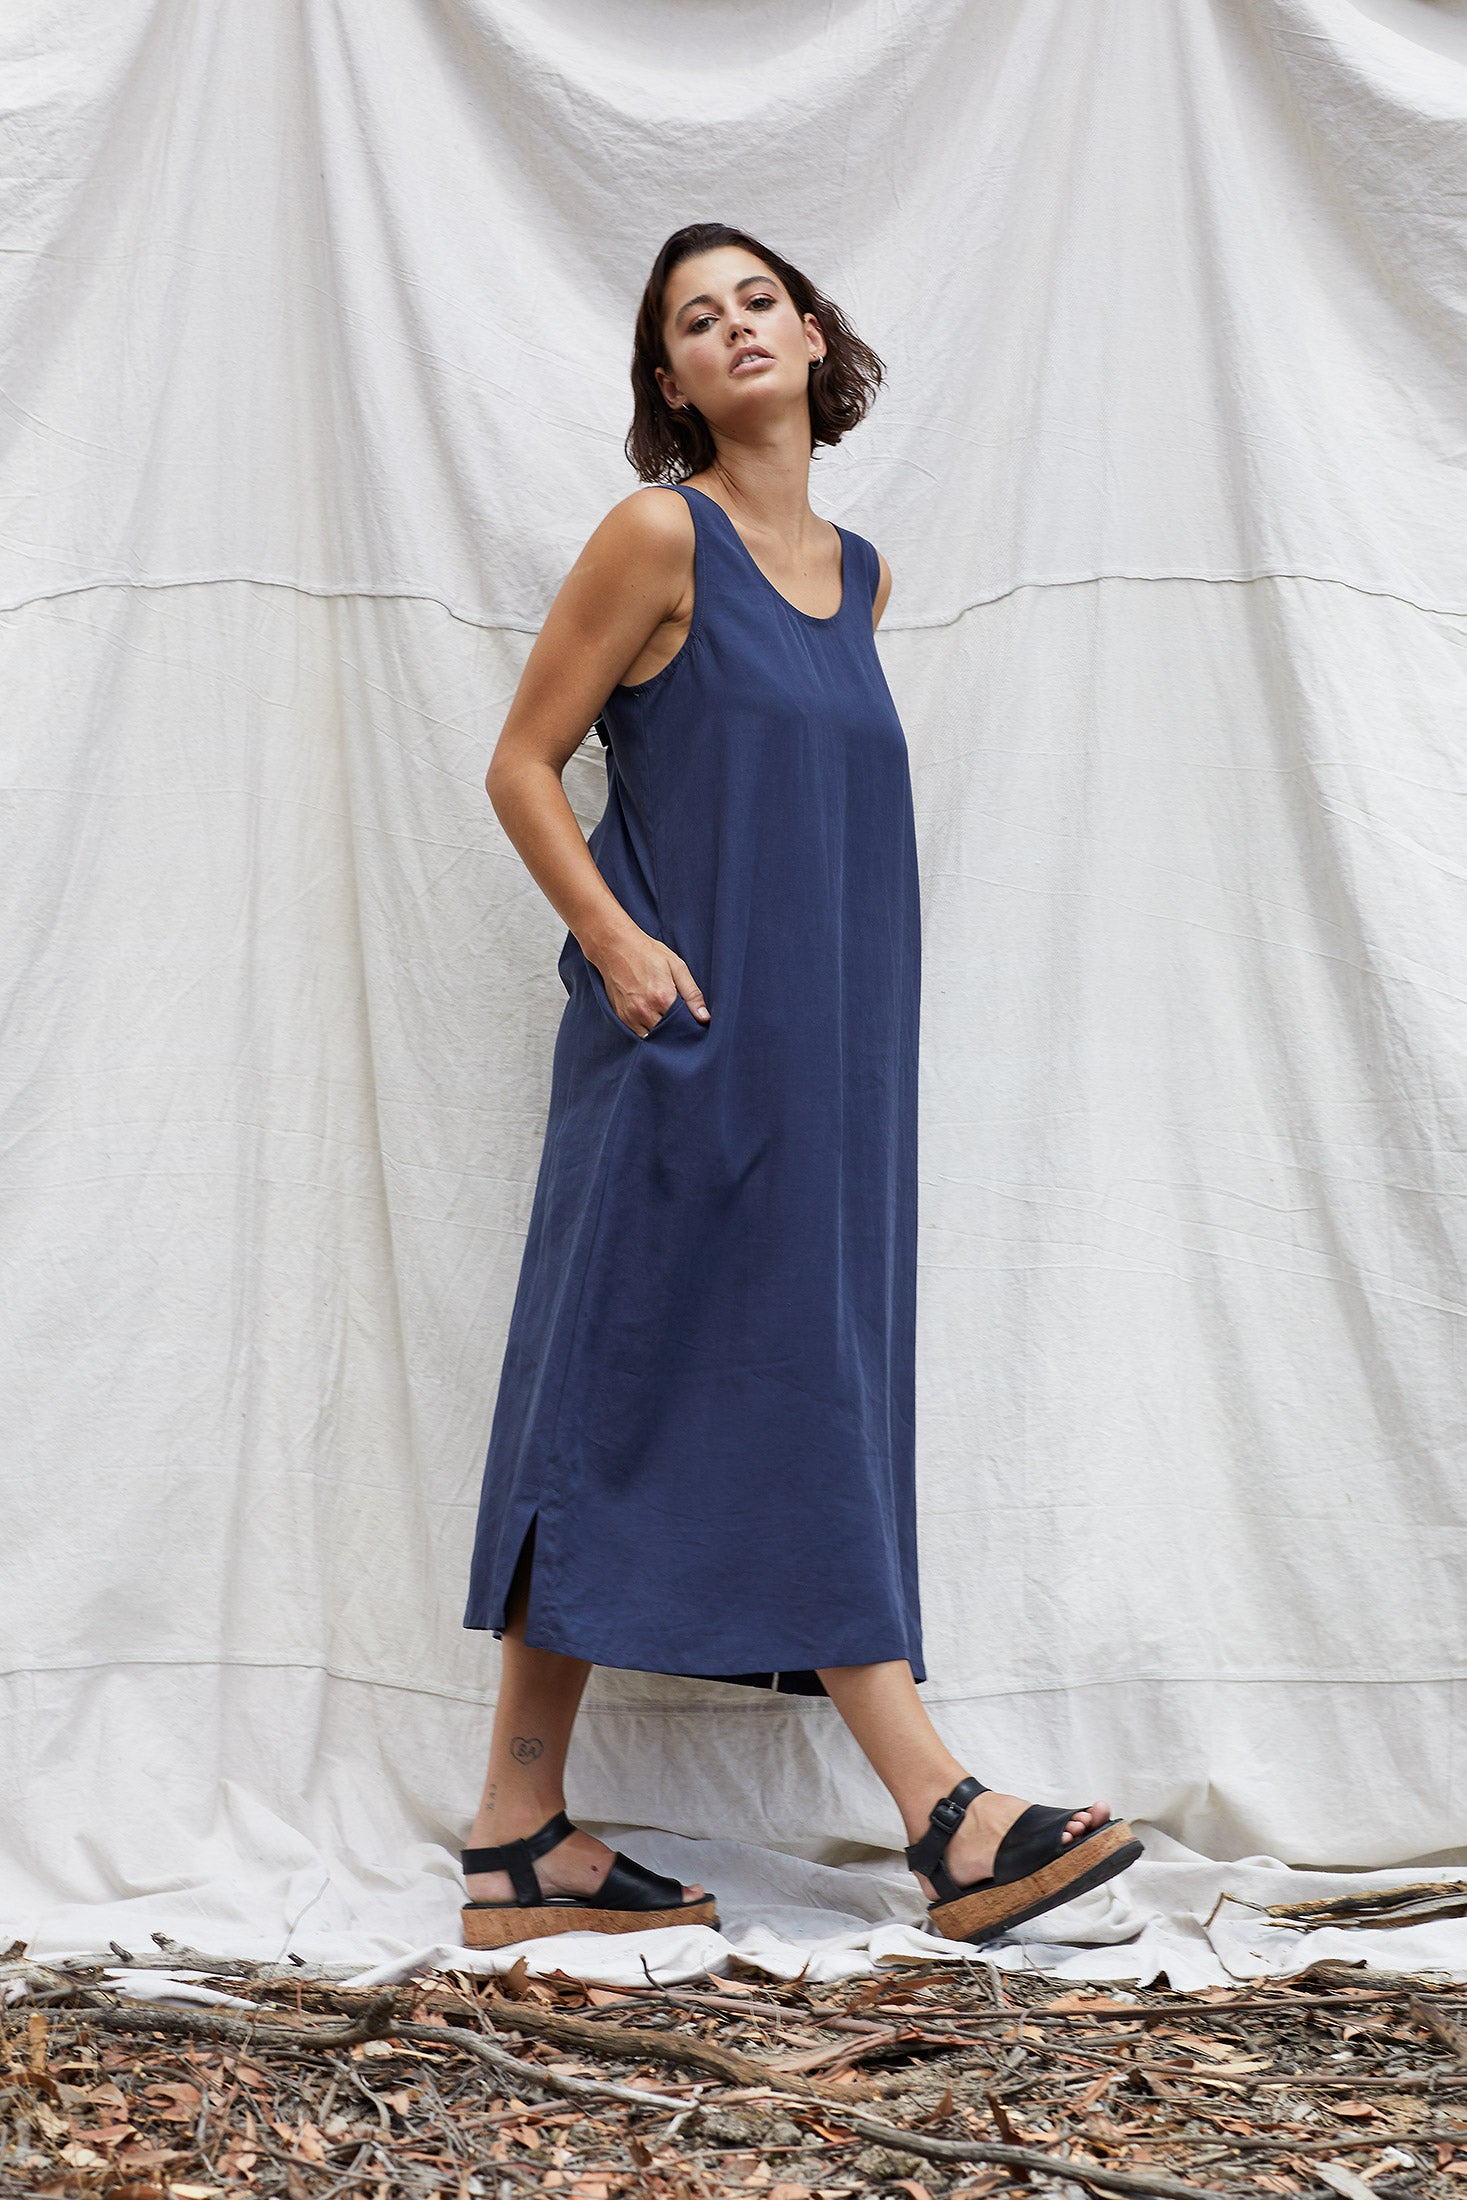 Blue Steel Matilda Dress Dresses Ethical Sustainable Vegan Organic Australian fashion womens clothes